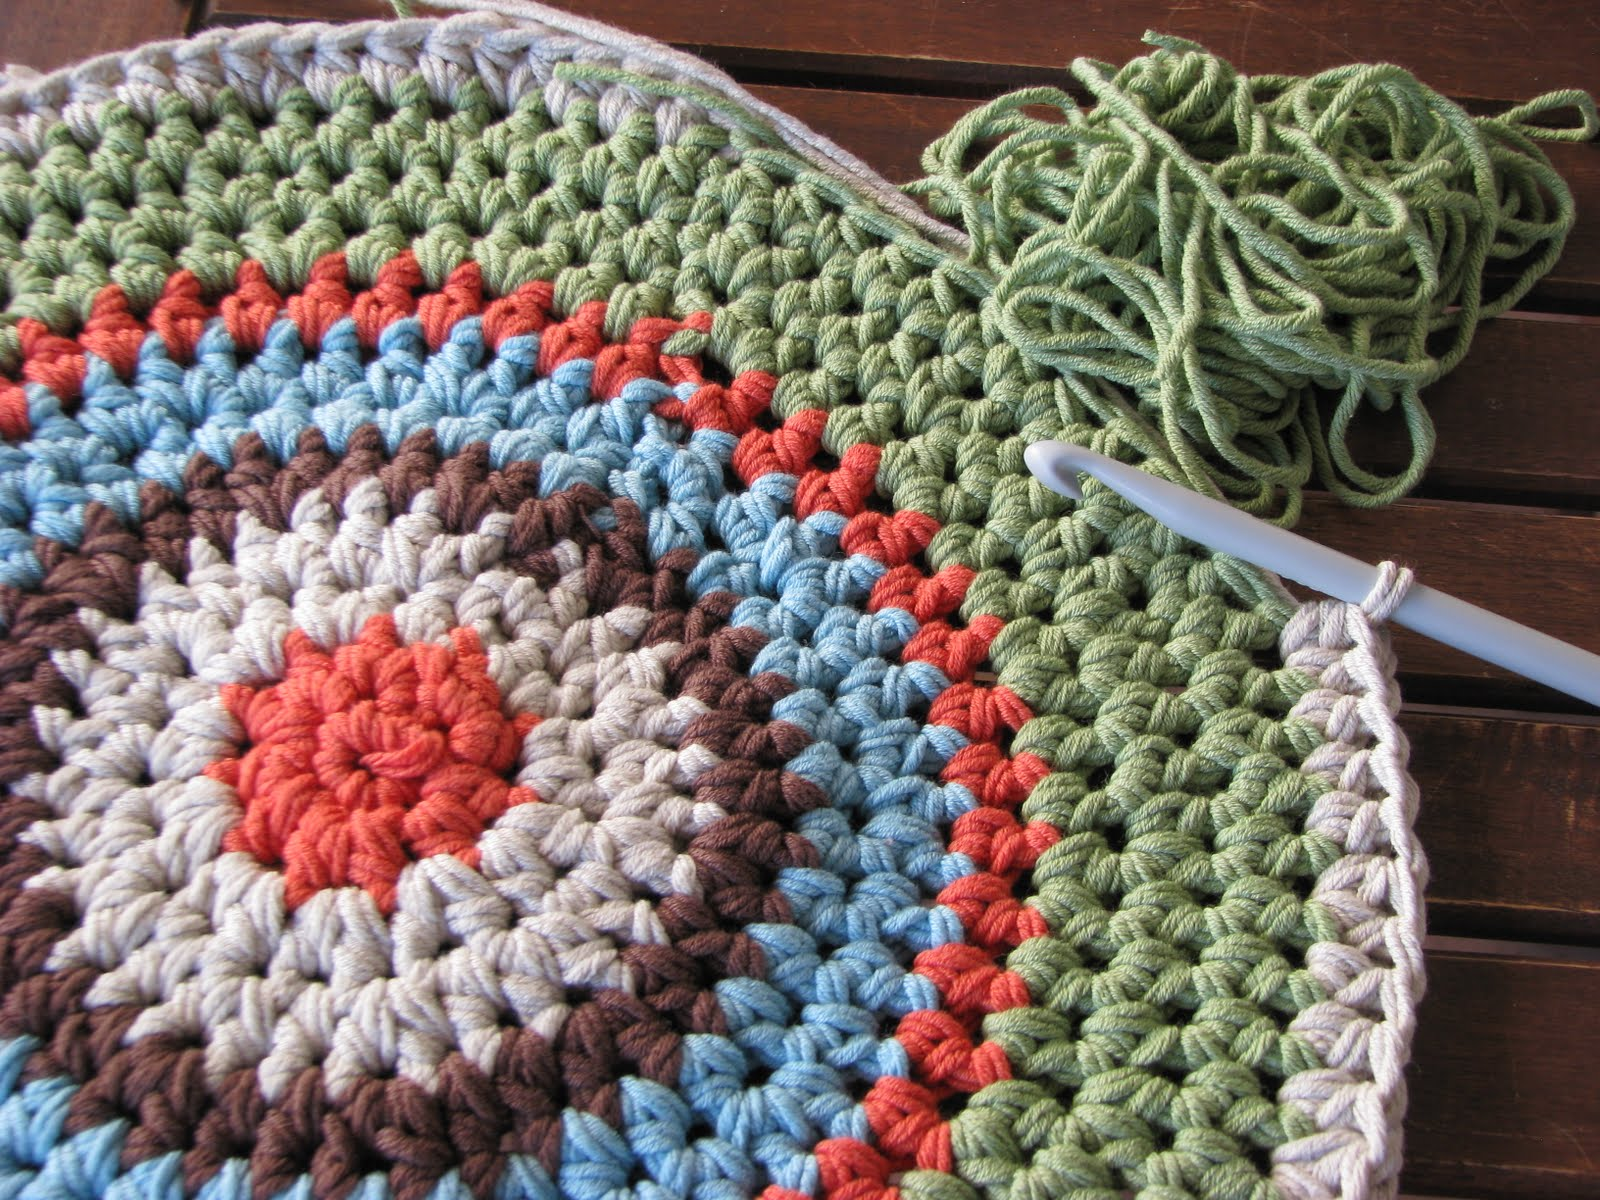 Crocheting Rounds : Lady Crochet: Crochet Round Rug